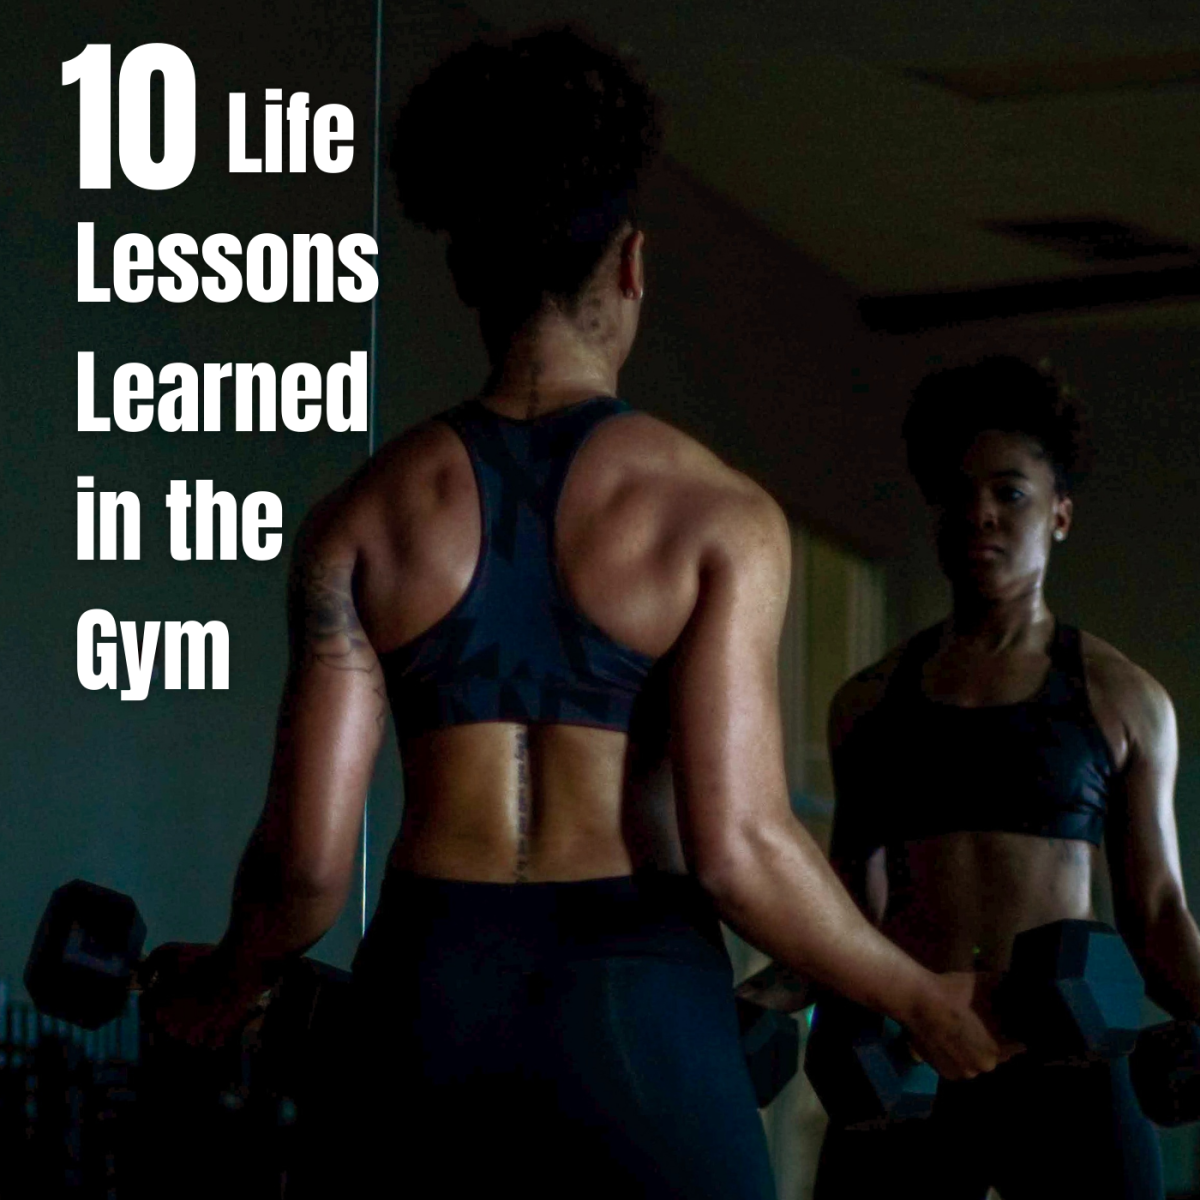 10 Life Lessons I Learned in the Gym